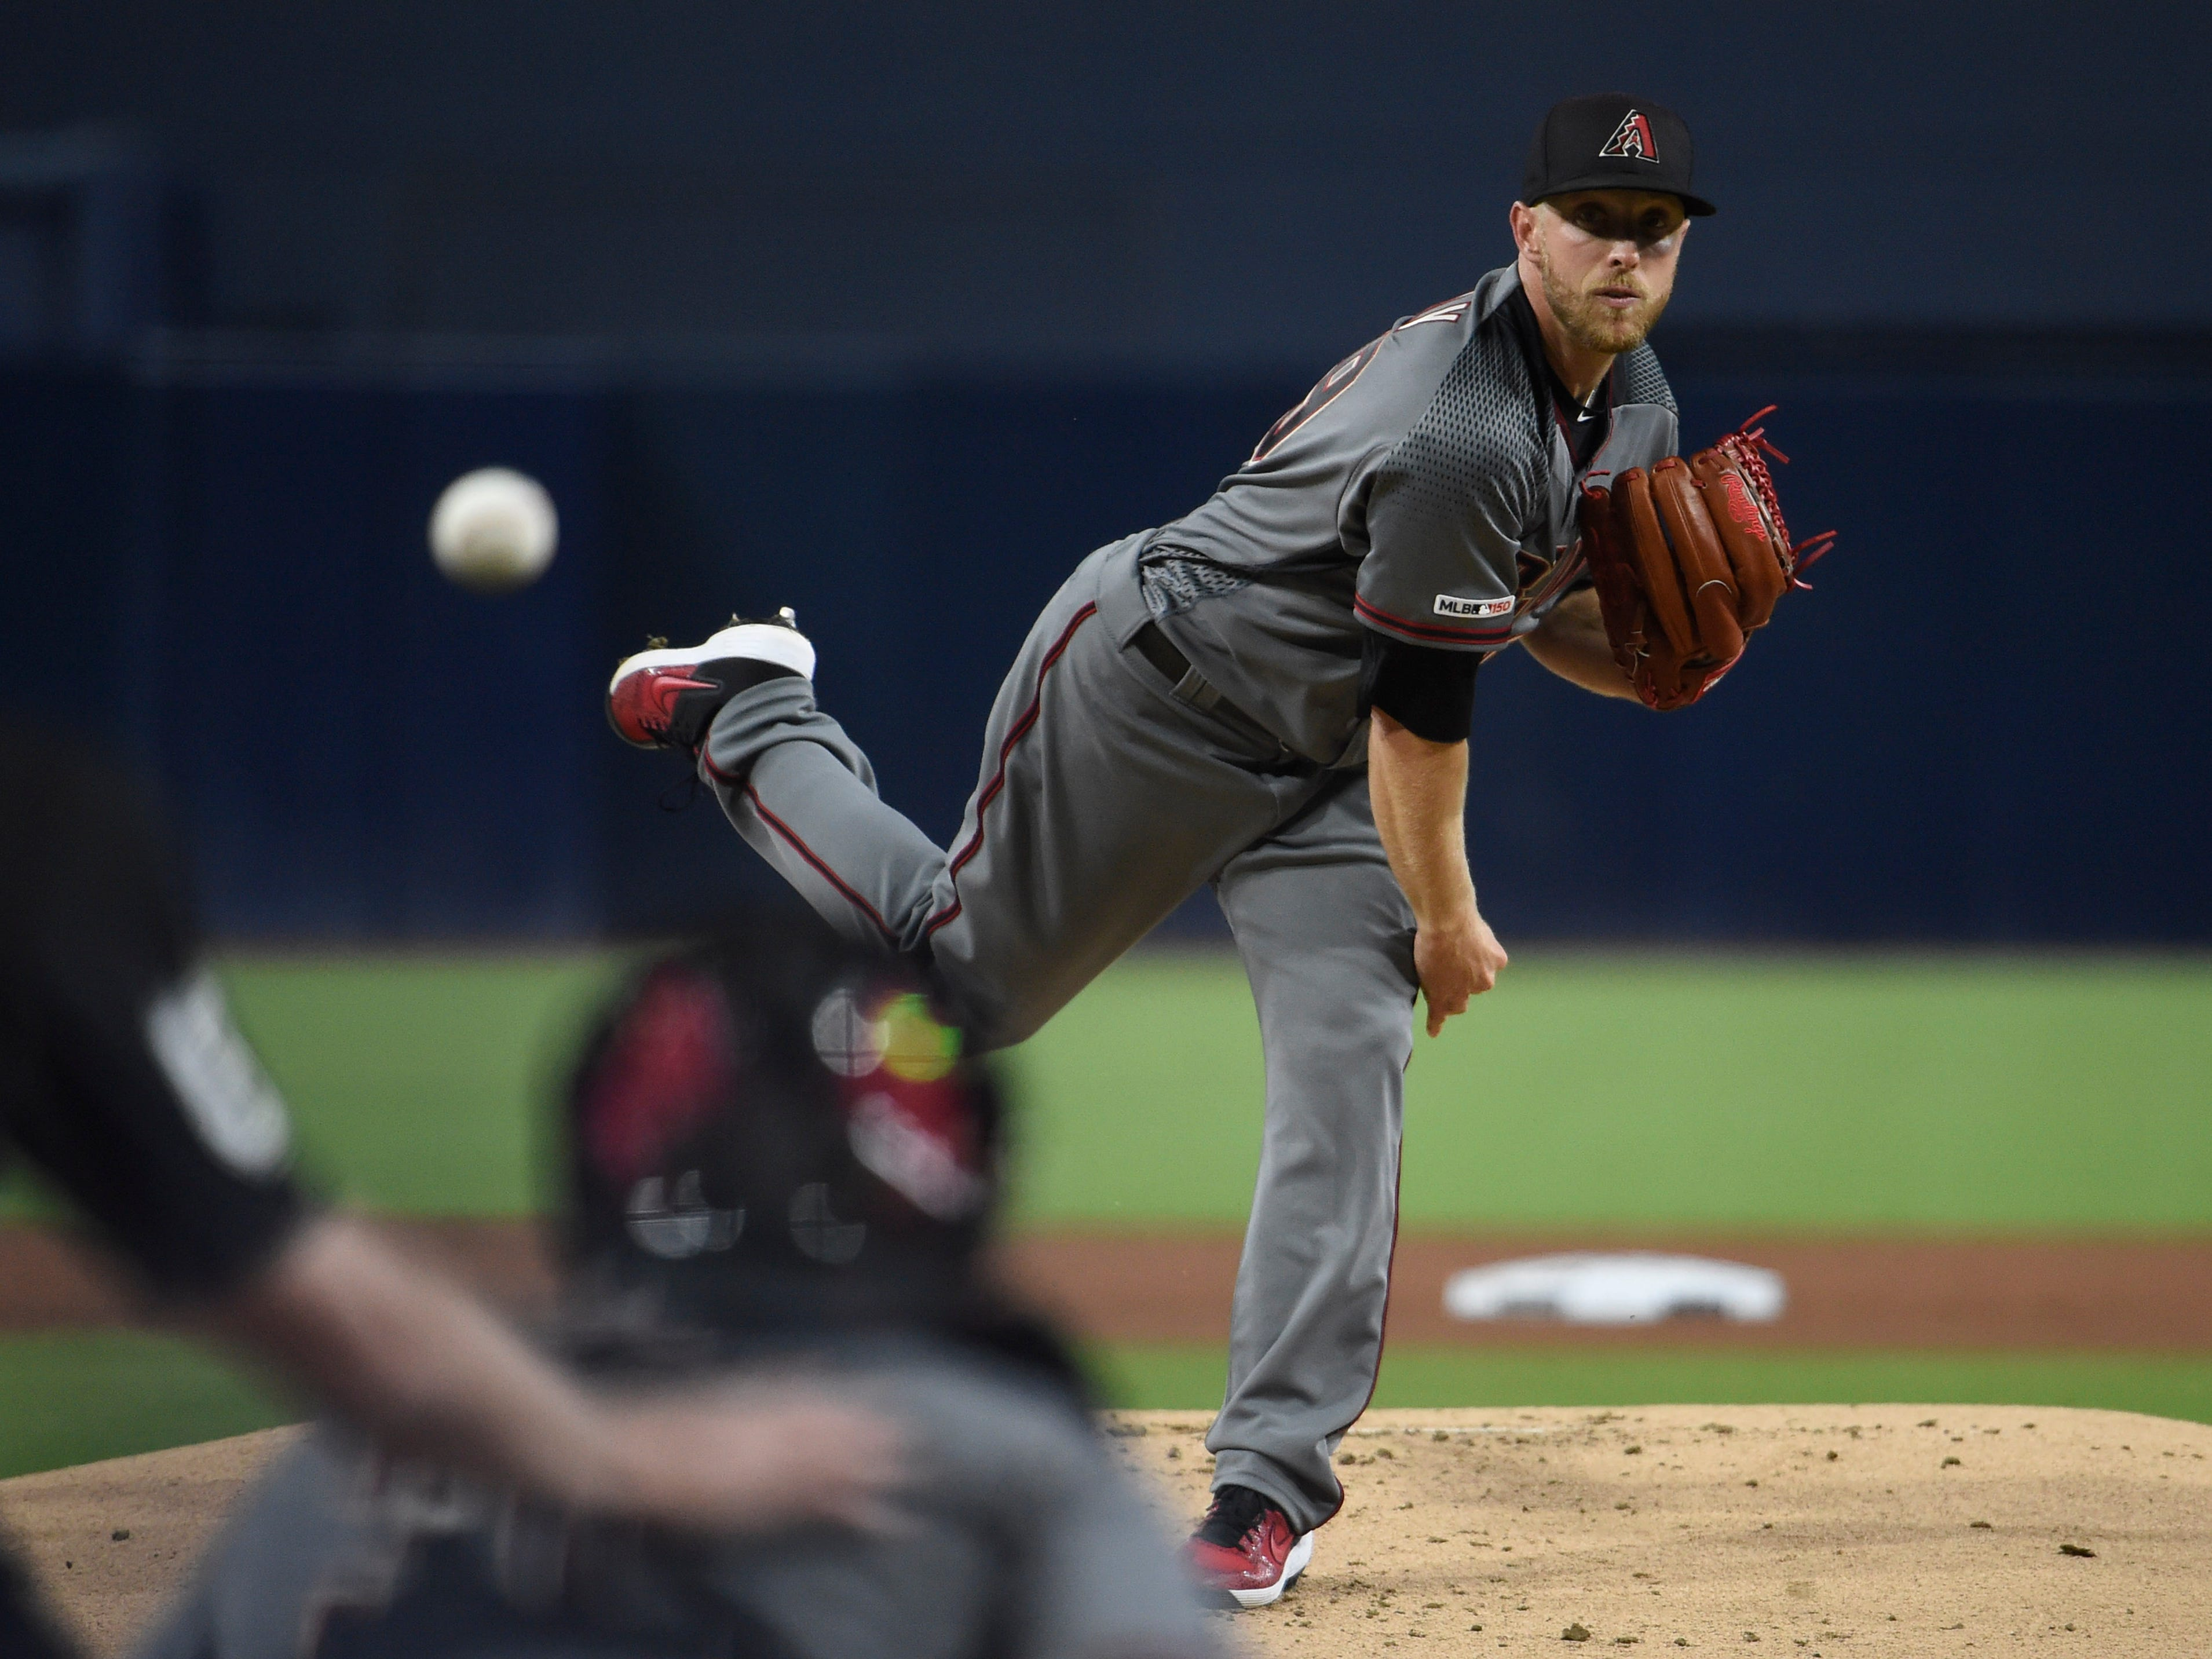 Merrill Kelly #29 of the Arizona Diamondbacks pitches during the first inning of a baseball game against the San Diego Padres at Petco Park April 1, 2019 in San Diego, California.